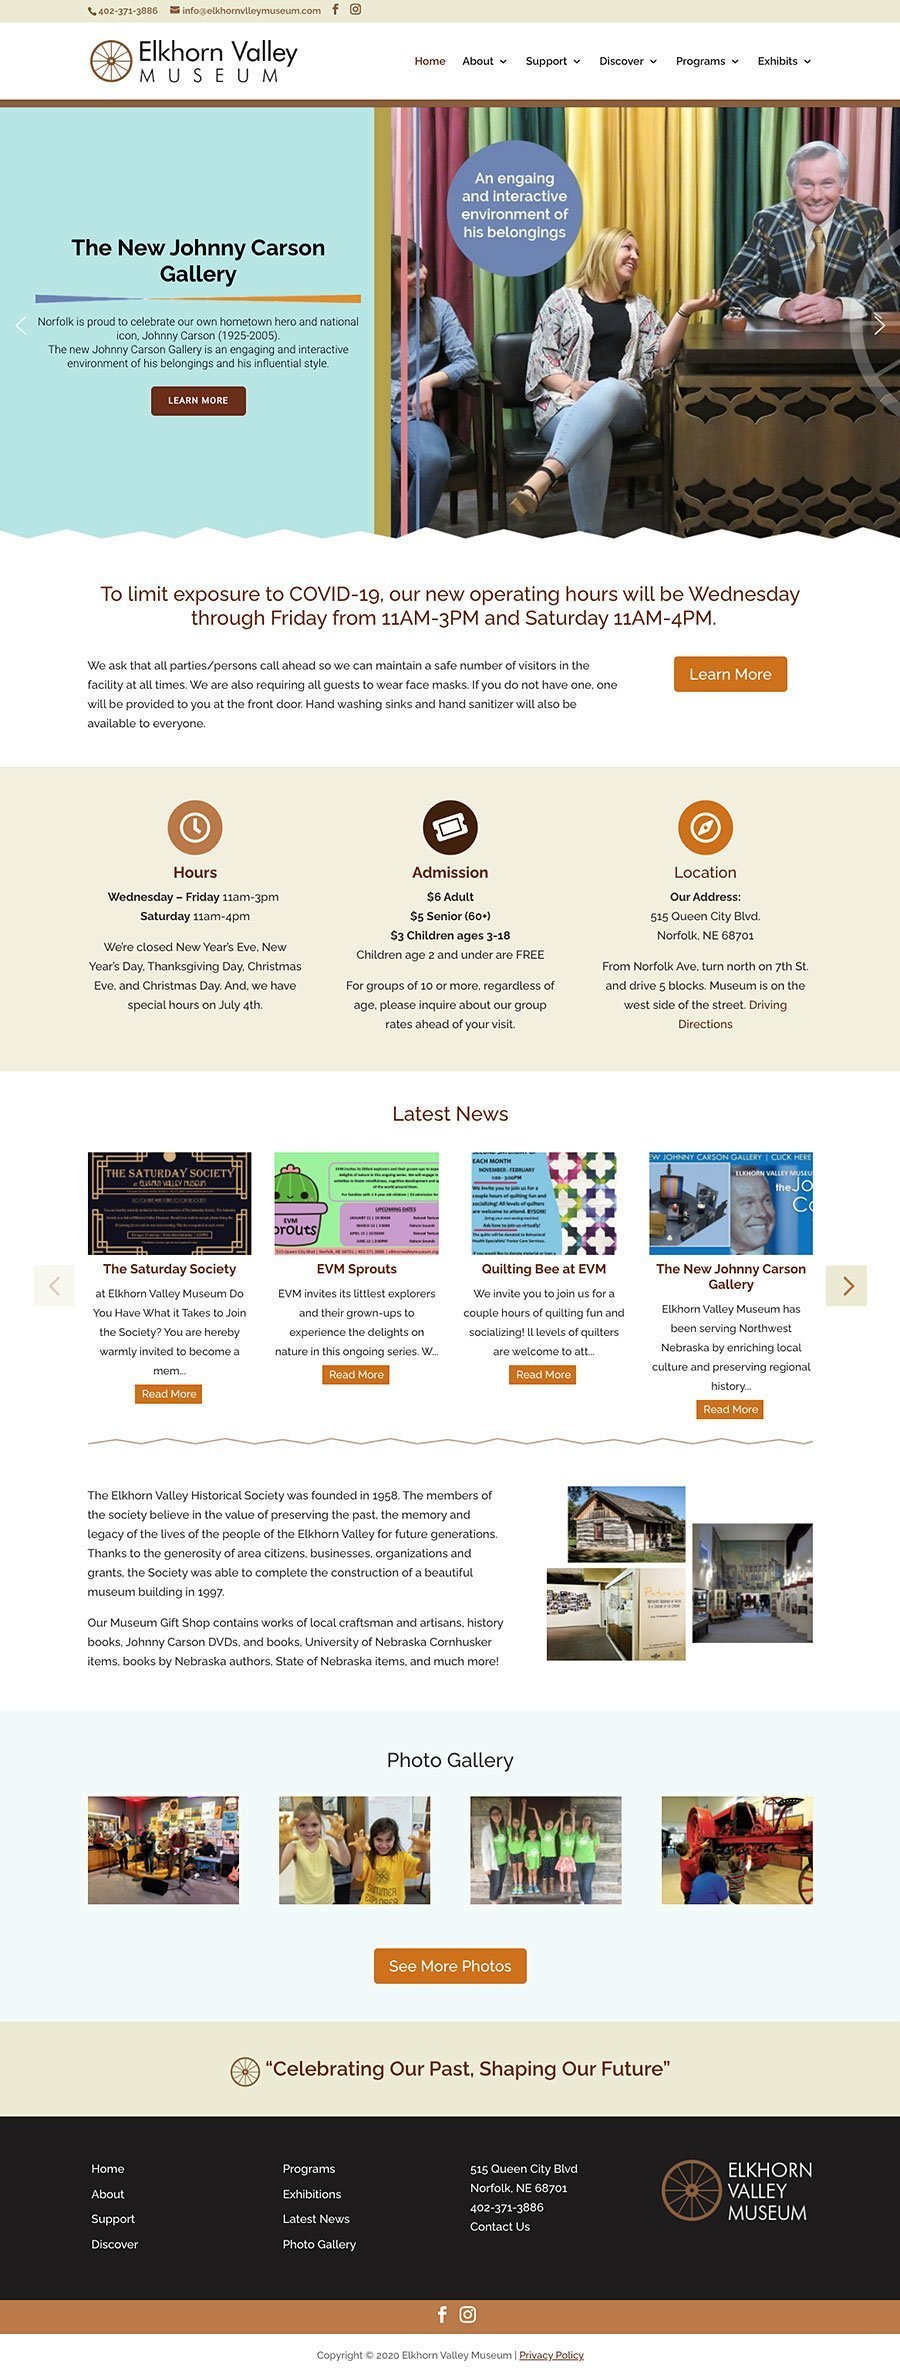 Elkhorn Valley Website Design